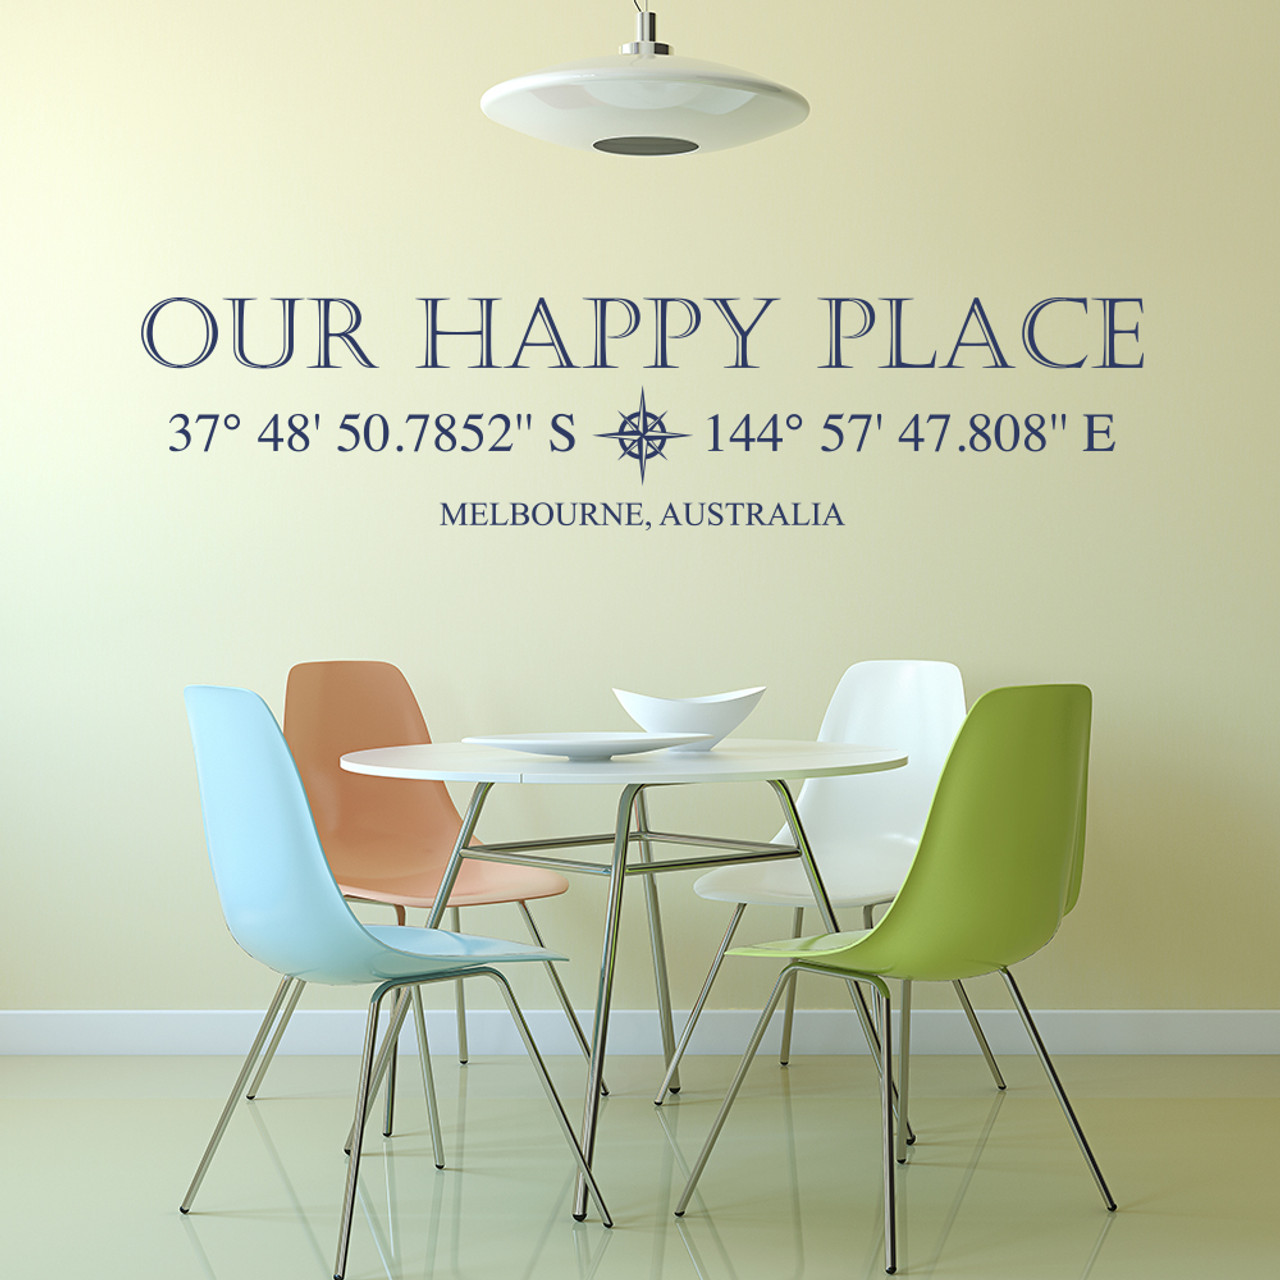 Our Happy Place vinyl wall decal with customizable coordinates, town and state name in dark blue